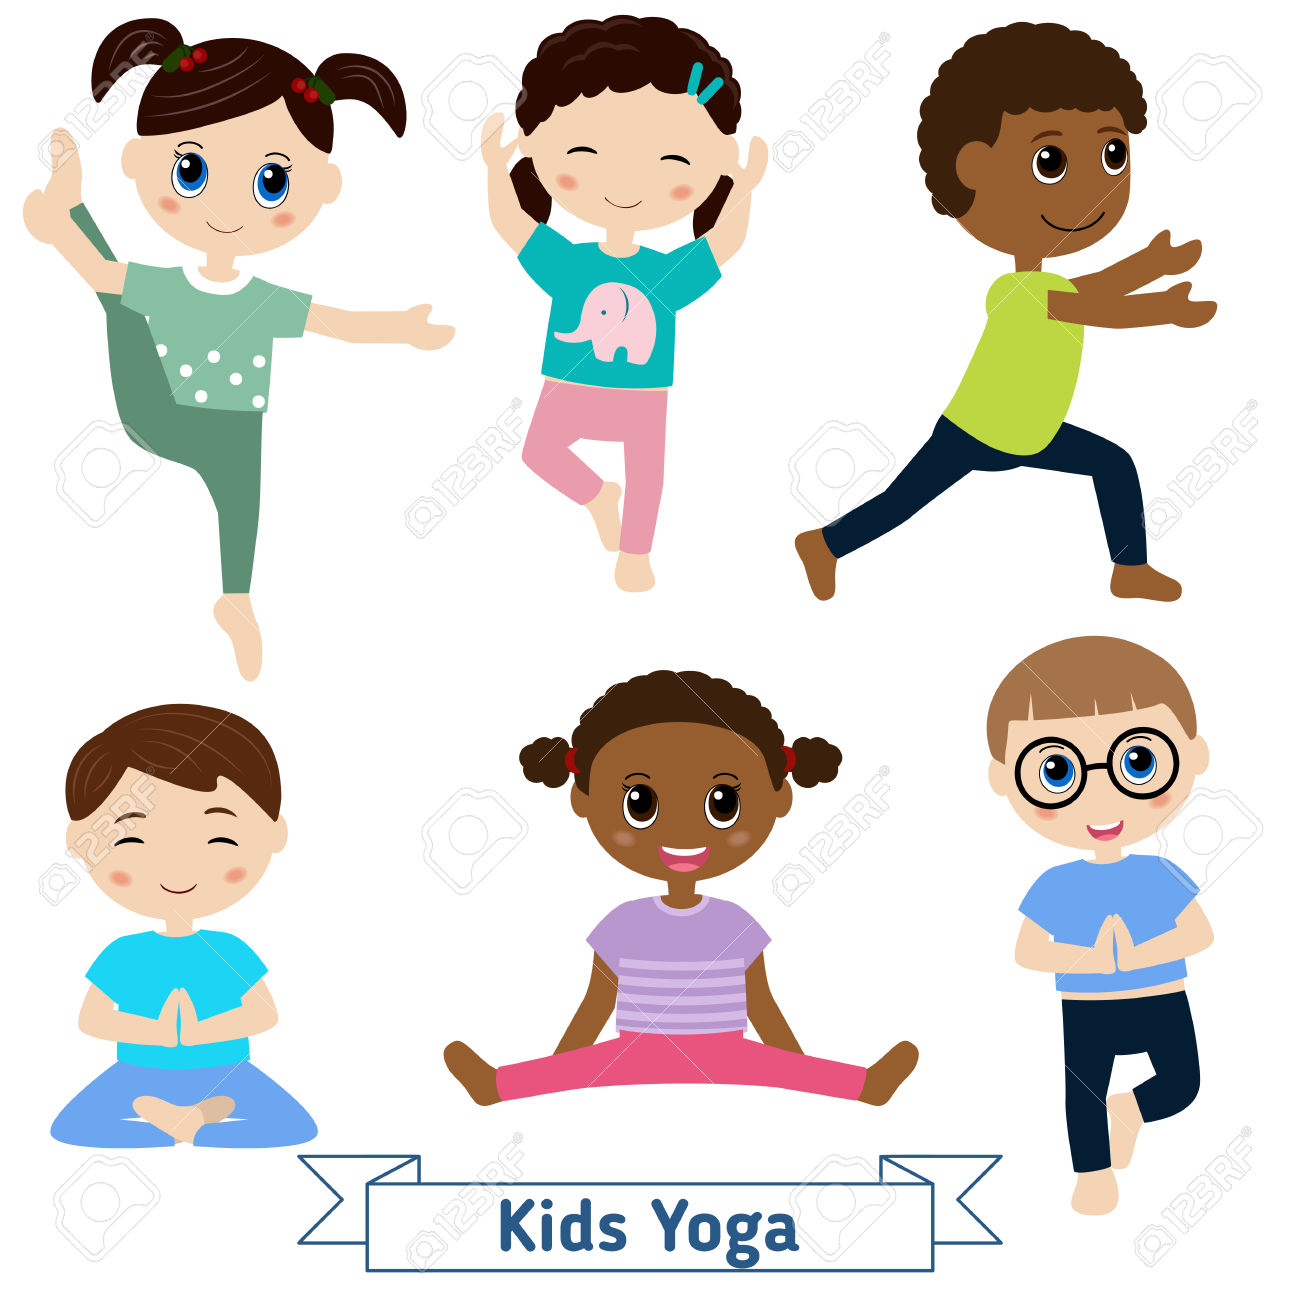 kids doing yoga clipart 20 free Cliparts | Download images ...